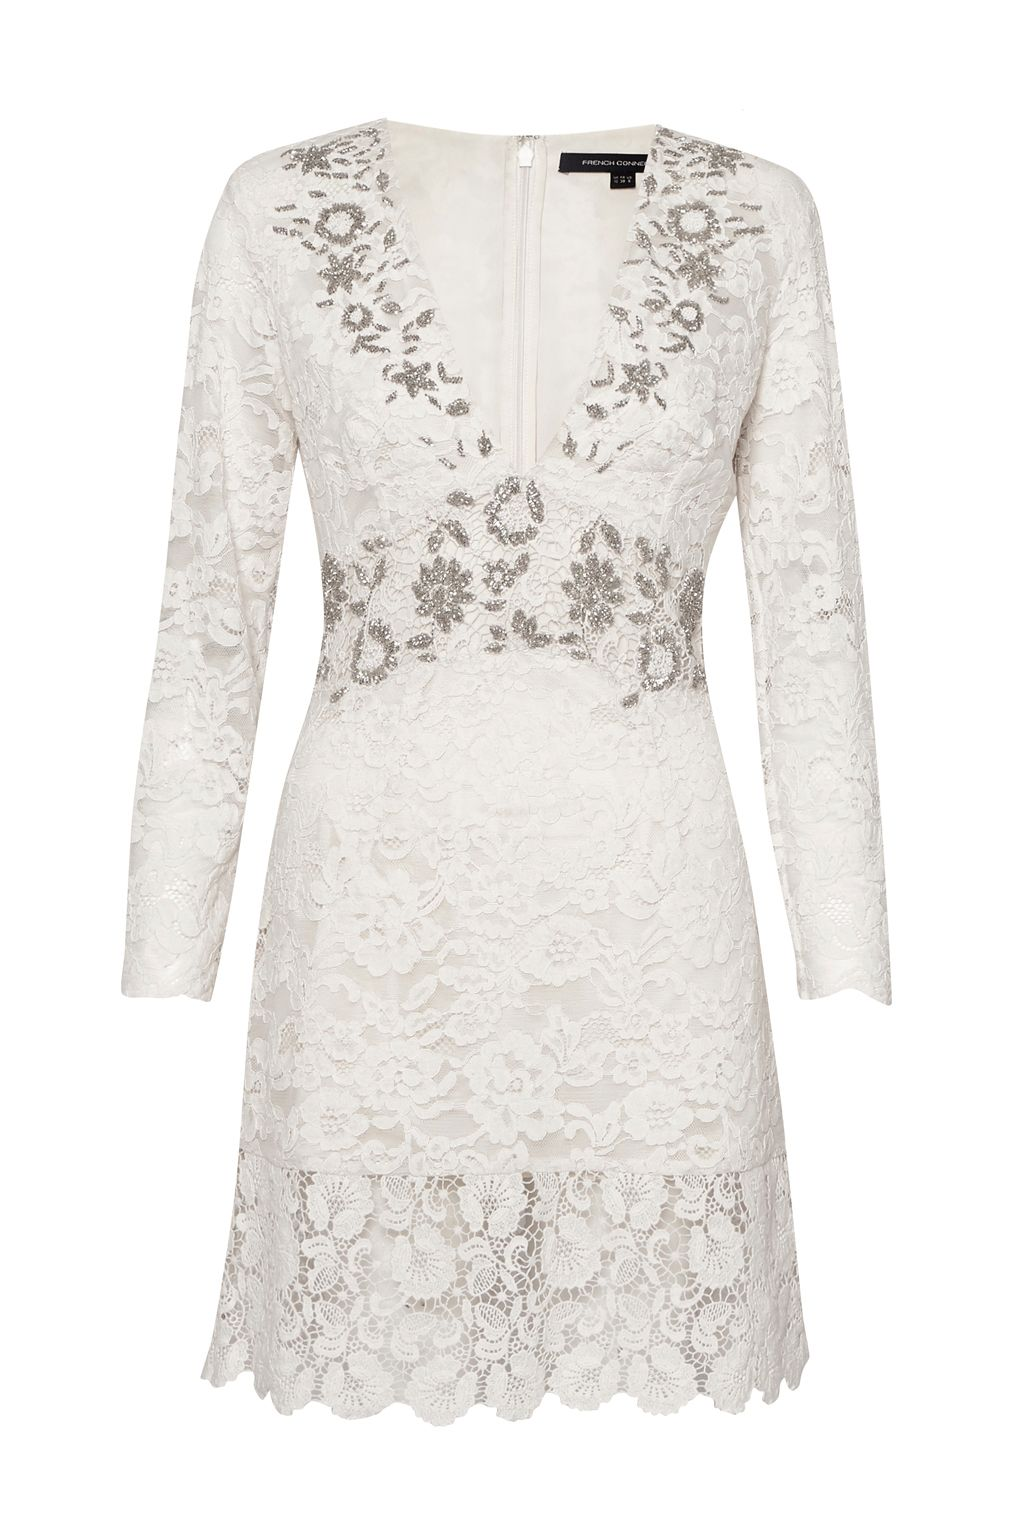 French Connection Emmie Lace Embellished Dress, White